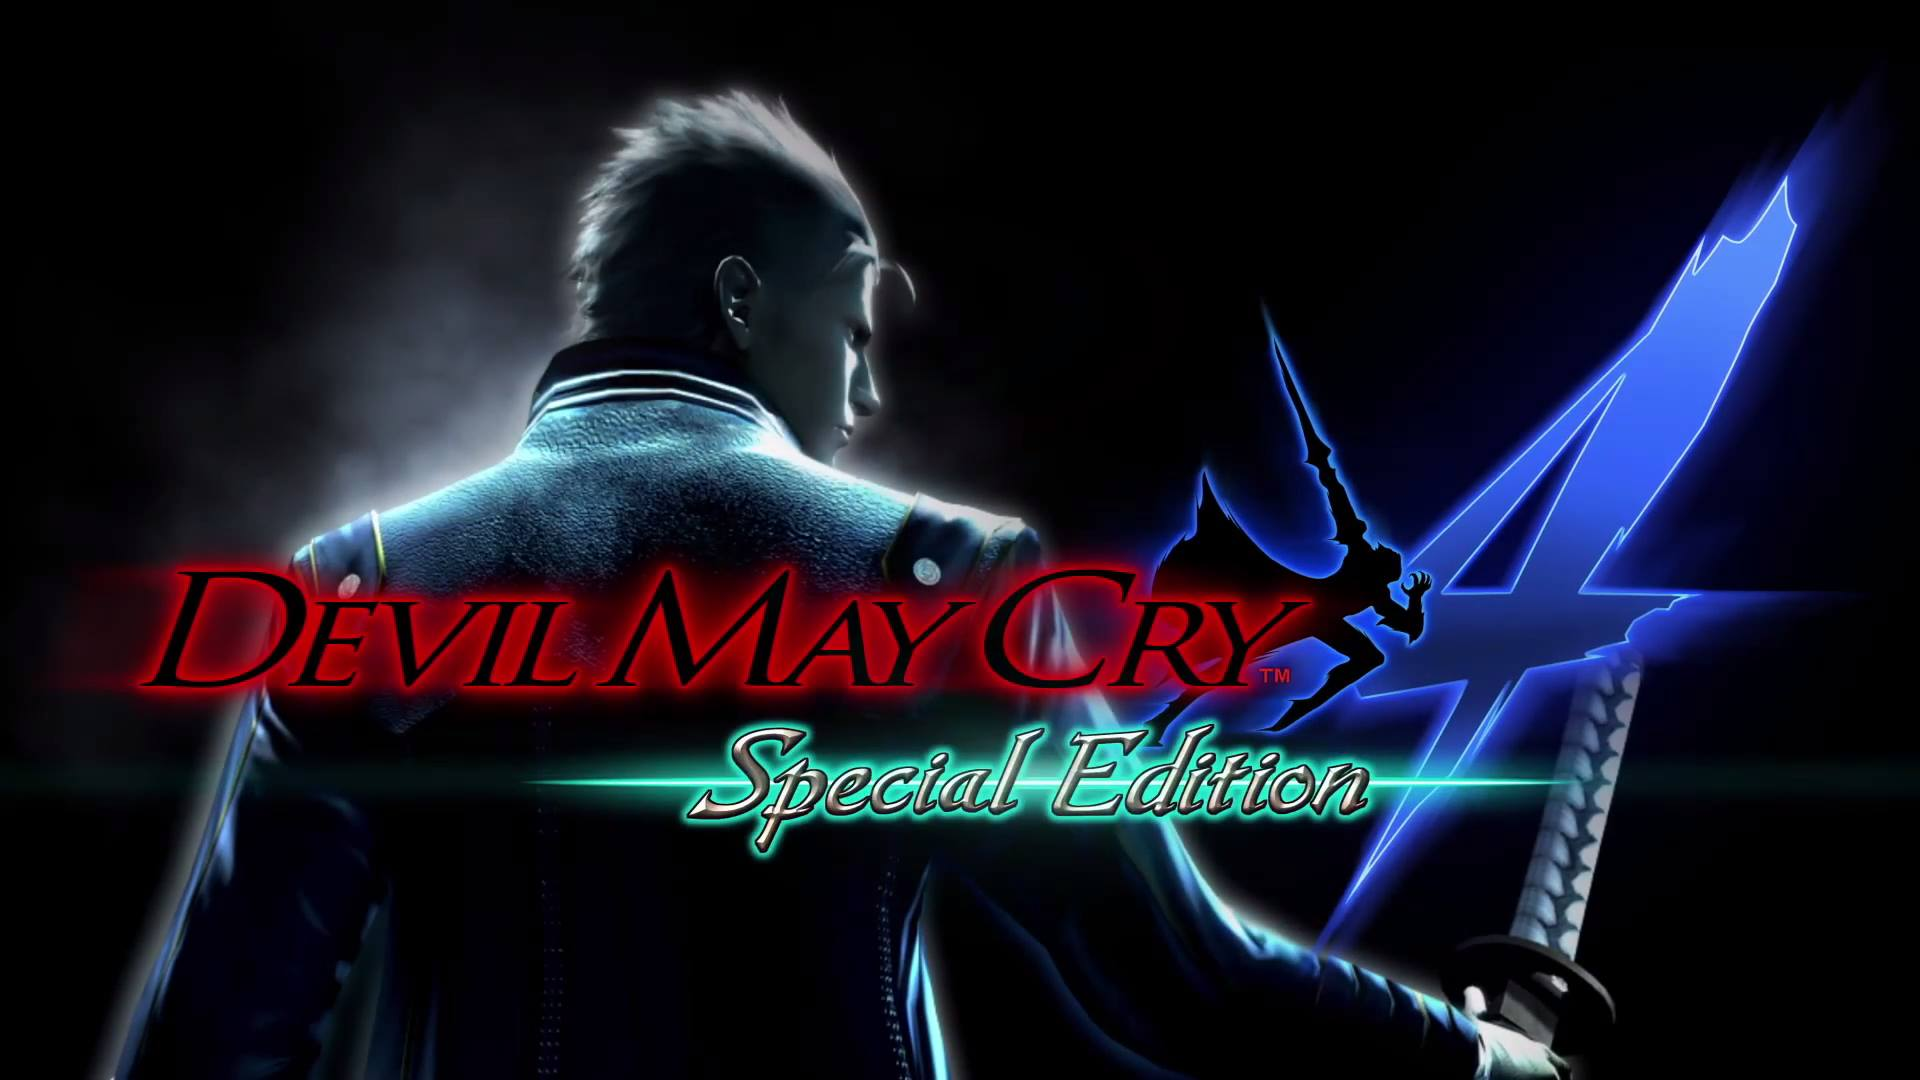 Dmc4 Special Edition Confirmed For Ps4 W Vergil Devil May Cry